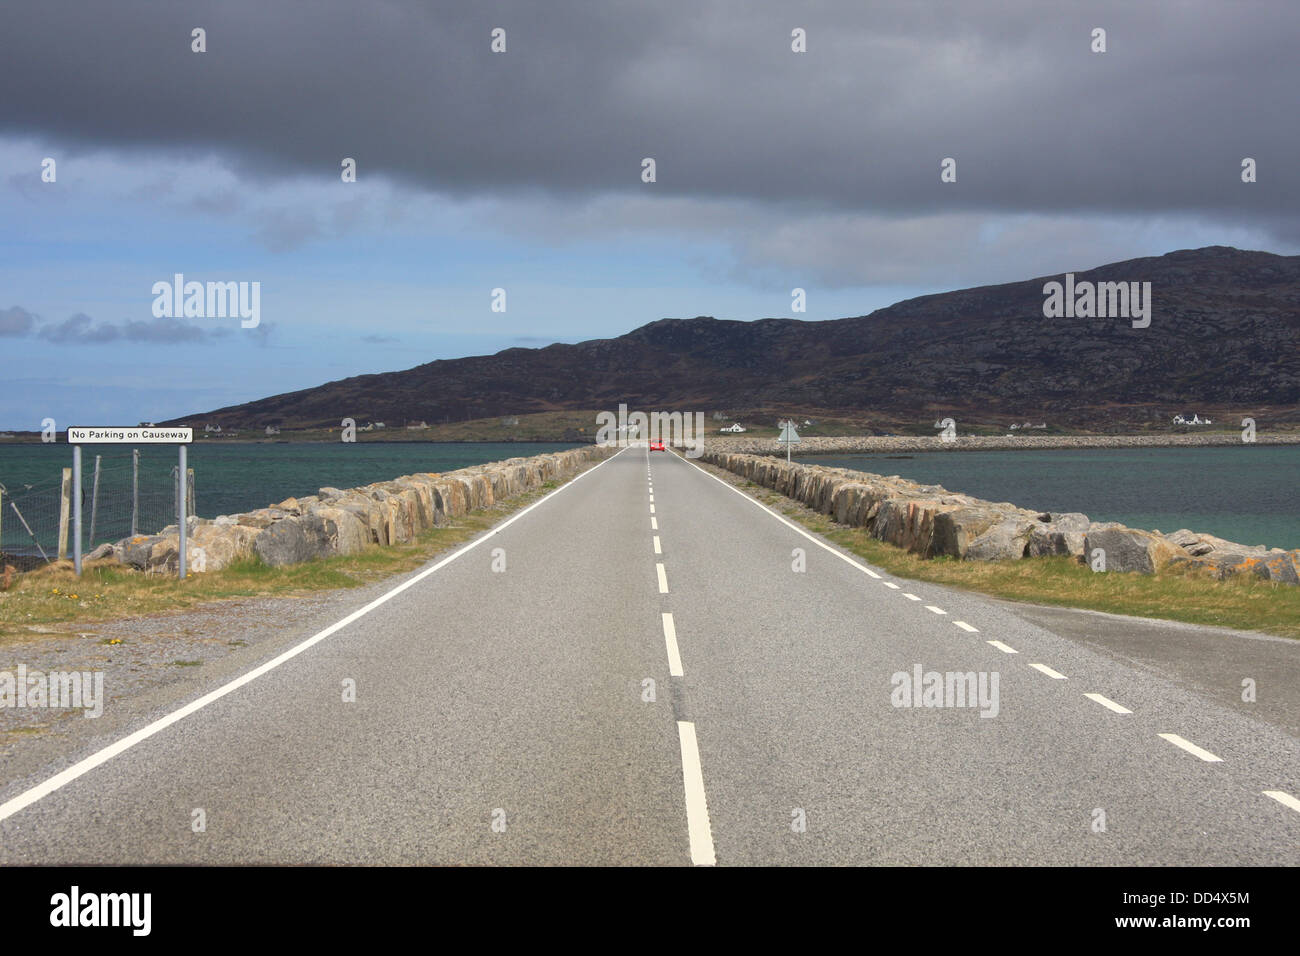 Eriskay causeway - the road linking the Isle of Eriskay to South Uist in the Outer Hebrides, Scotland - Stock Image